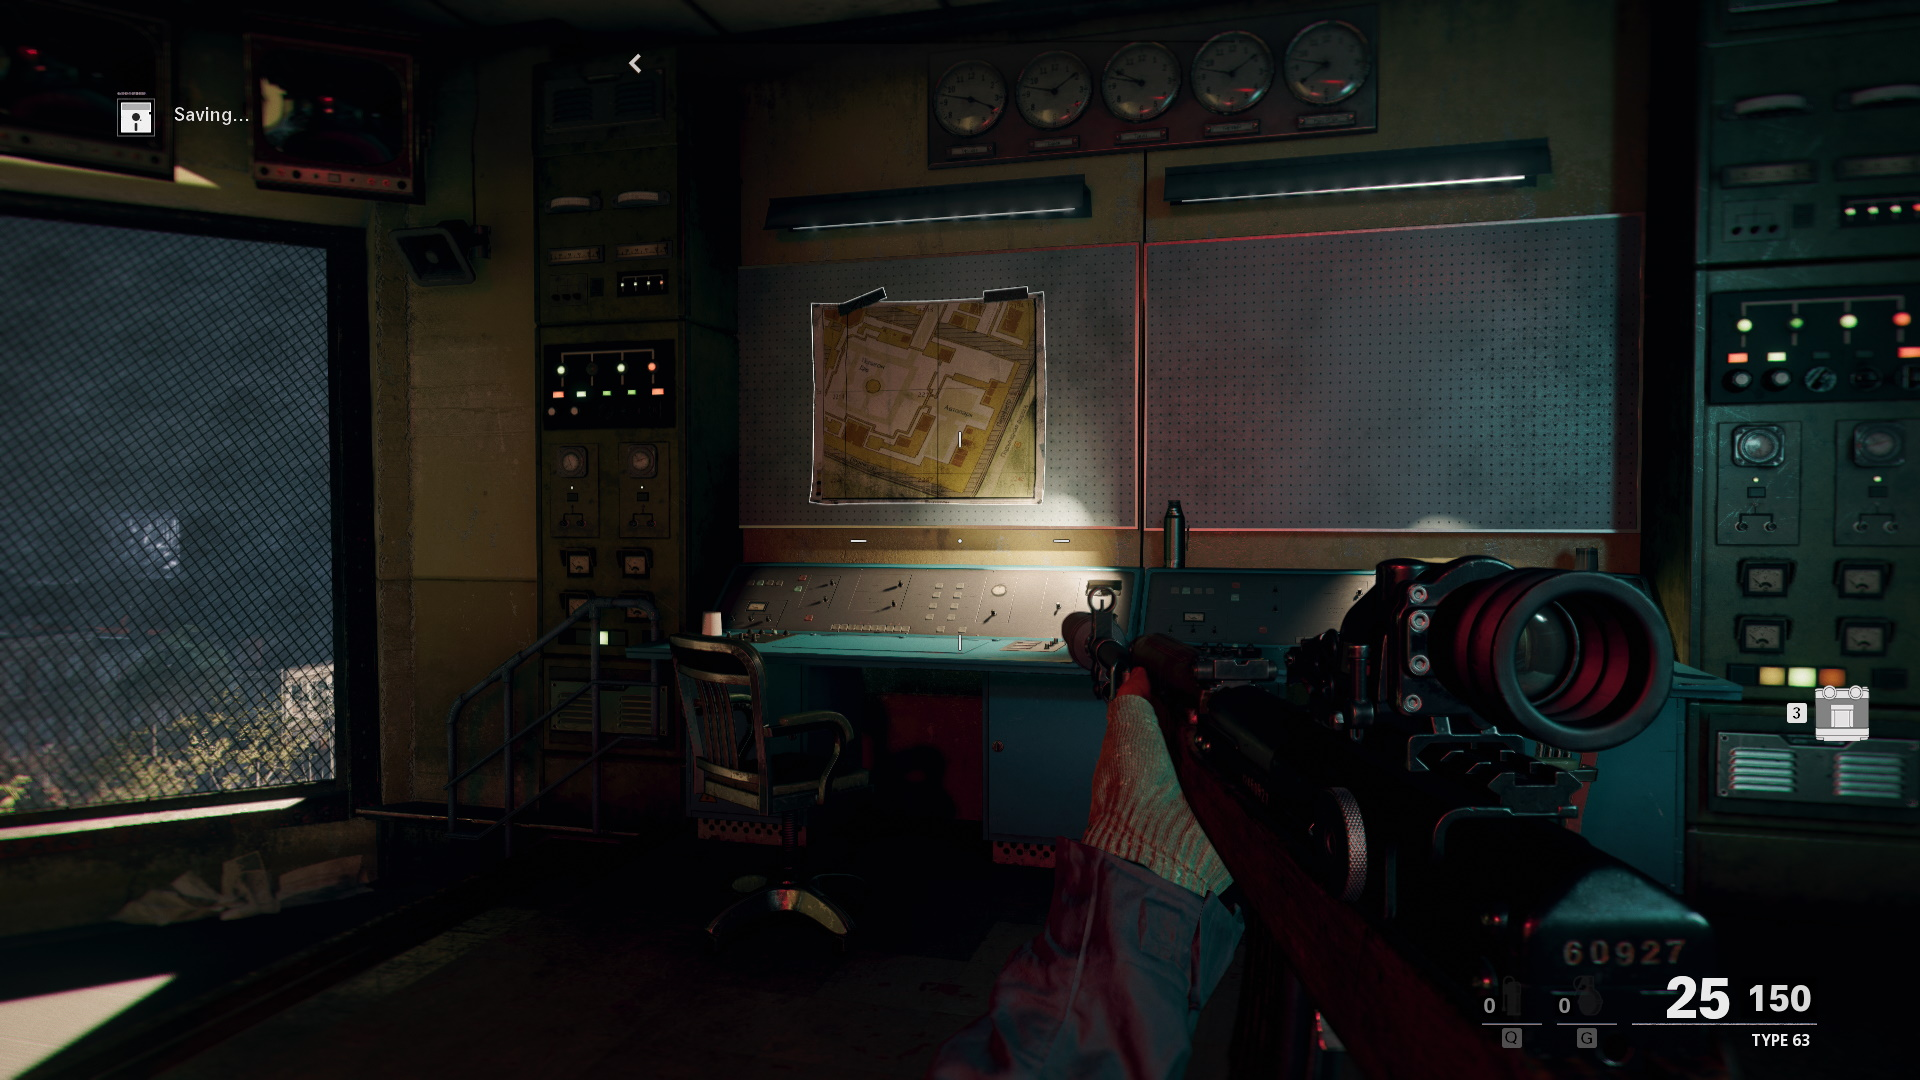 Evidence location in redlight greenlight mission for Operation Chaos.